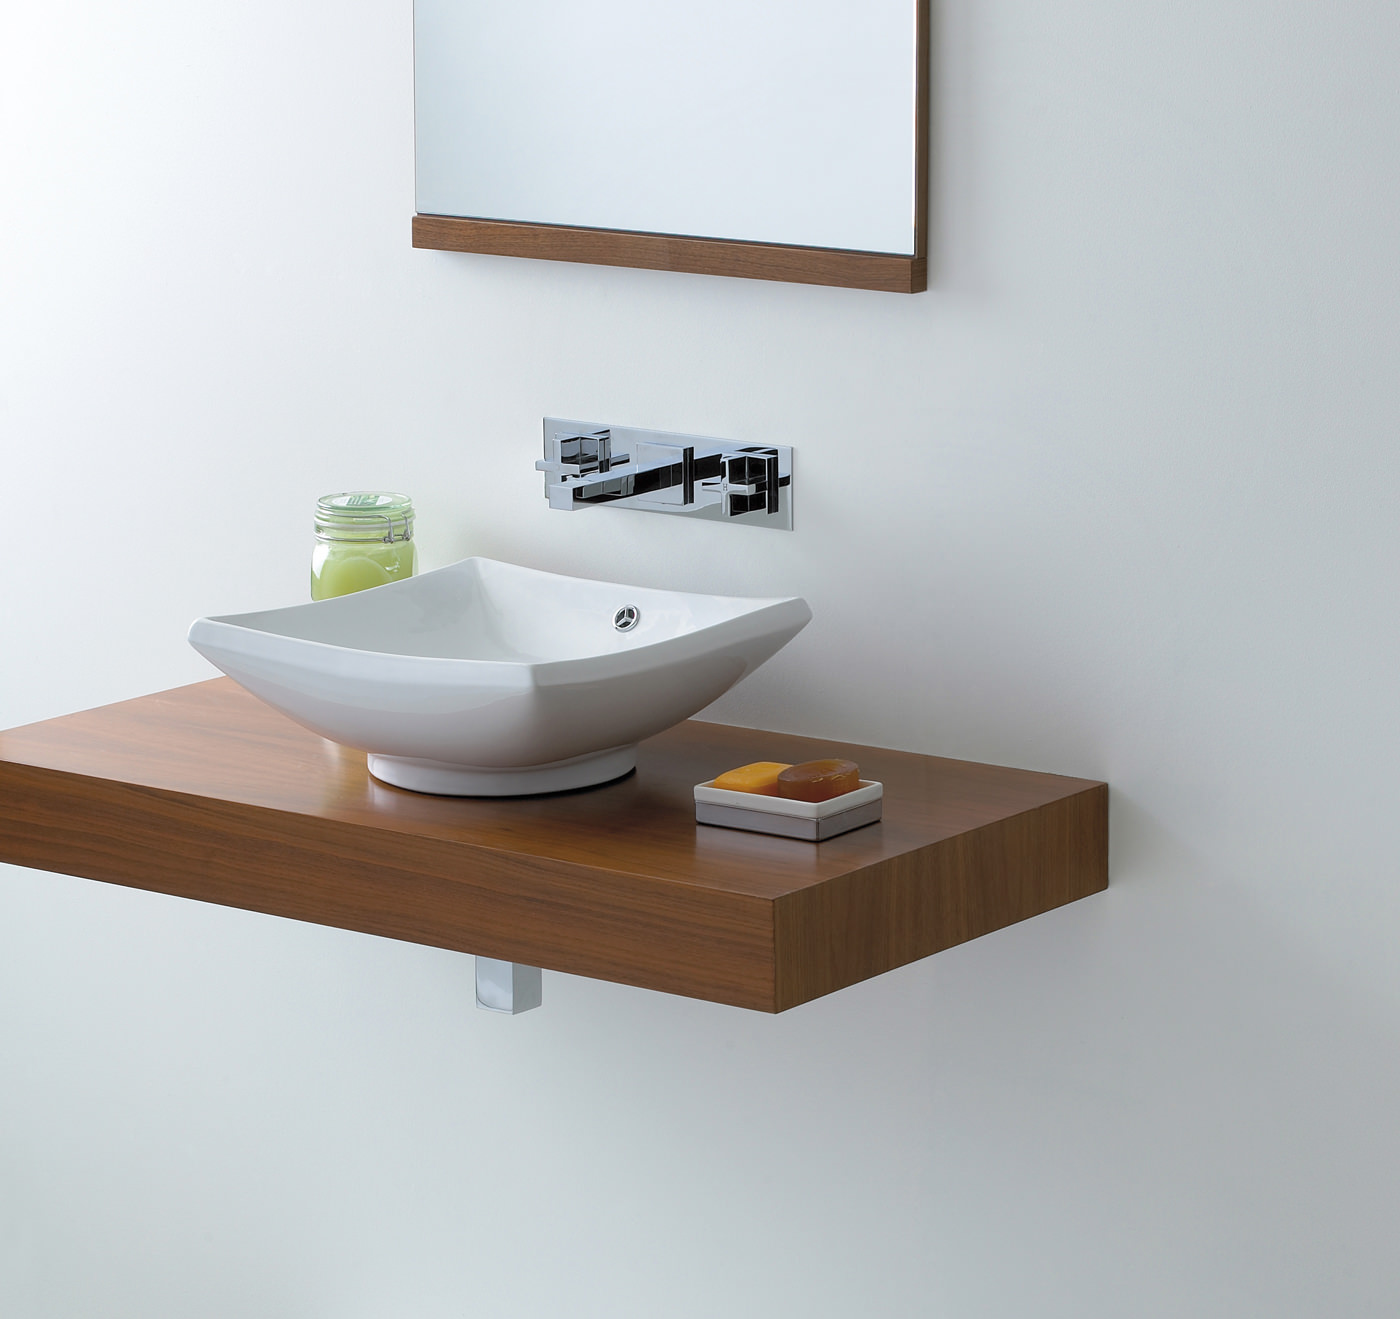 Small Counter Top Basins : ... basins counter top basins phoenix counter top square shape wash basin